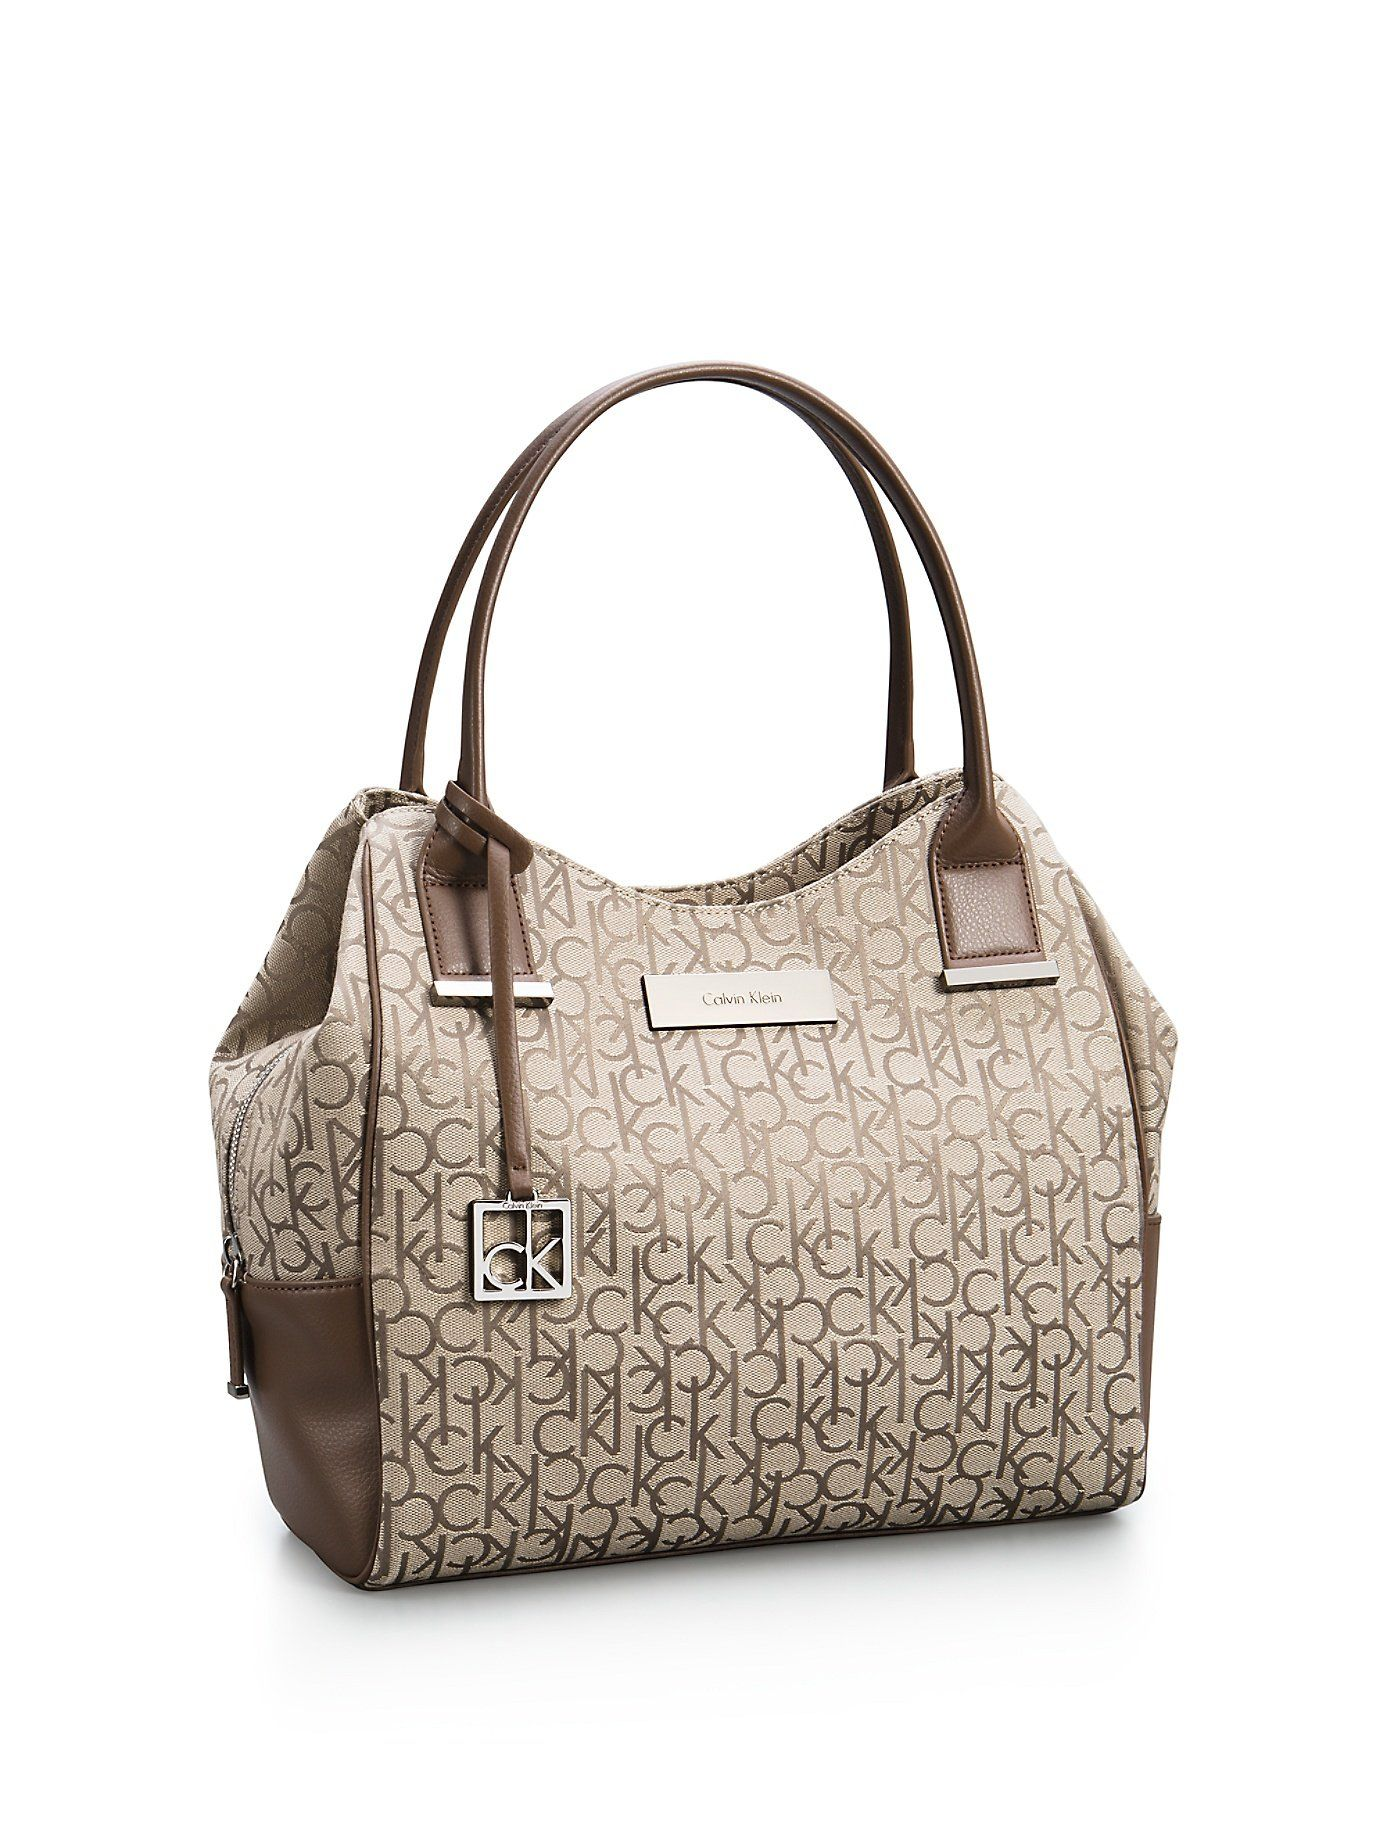 Calvin Klein Logo Jacquard Center Zip Hobo Handbag Satchel Purse Tote Natural